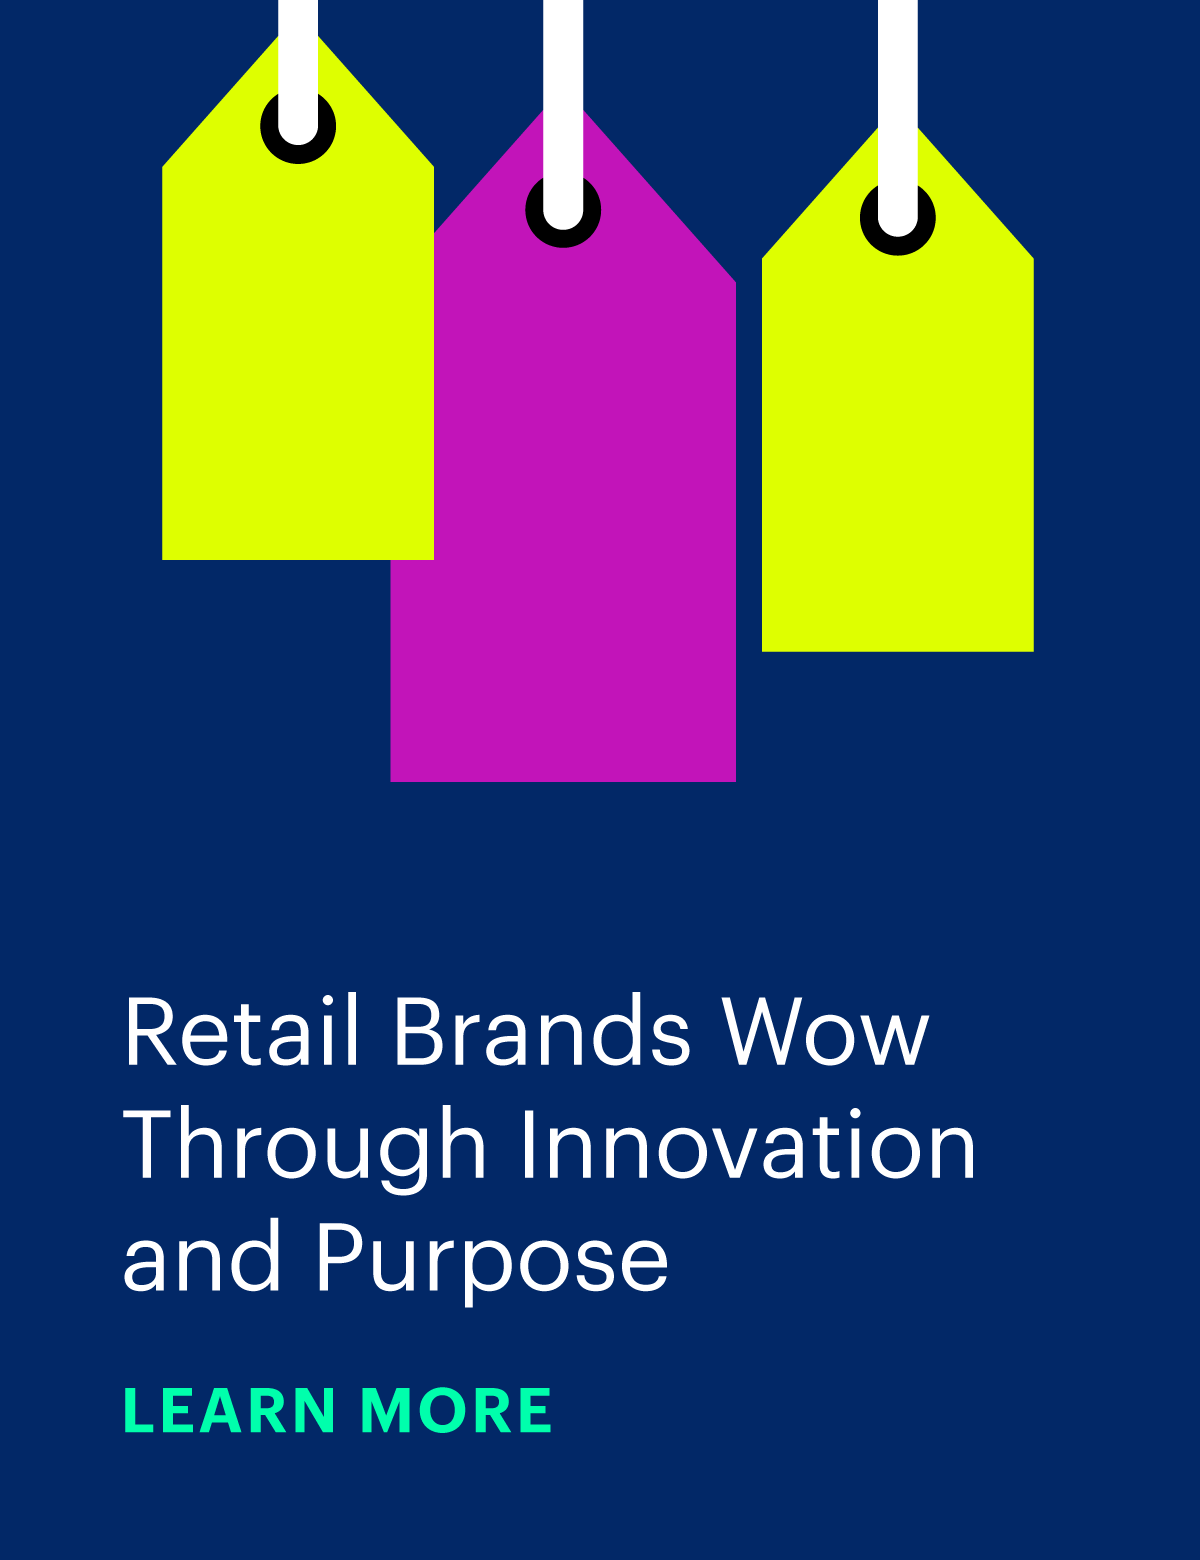 Retail Brands Wow Through Innovation and Purpose